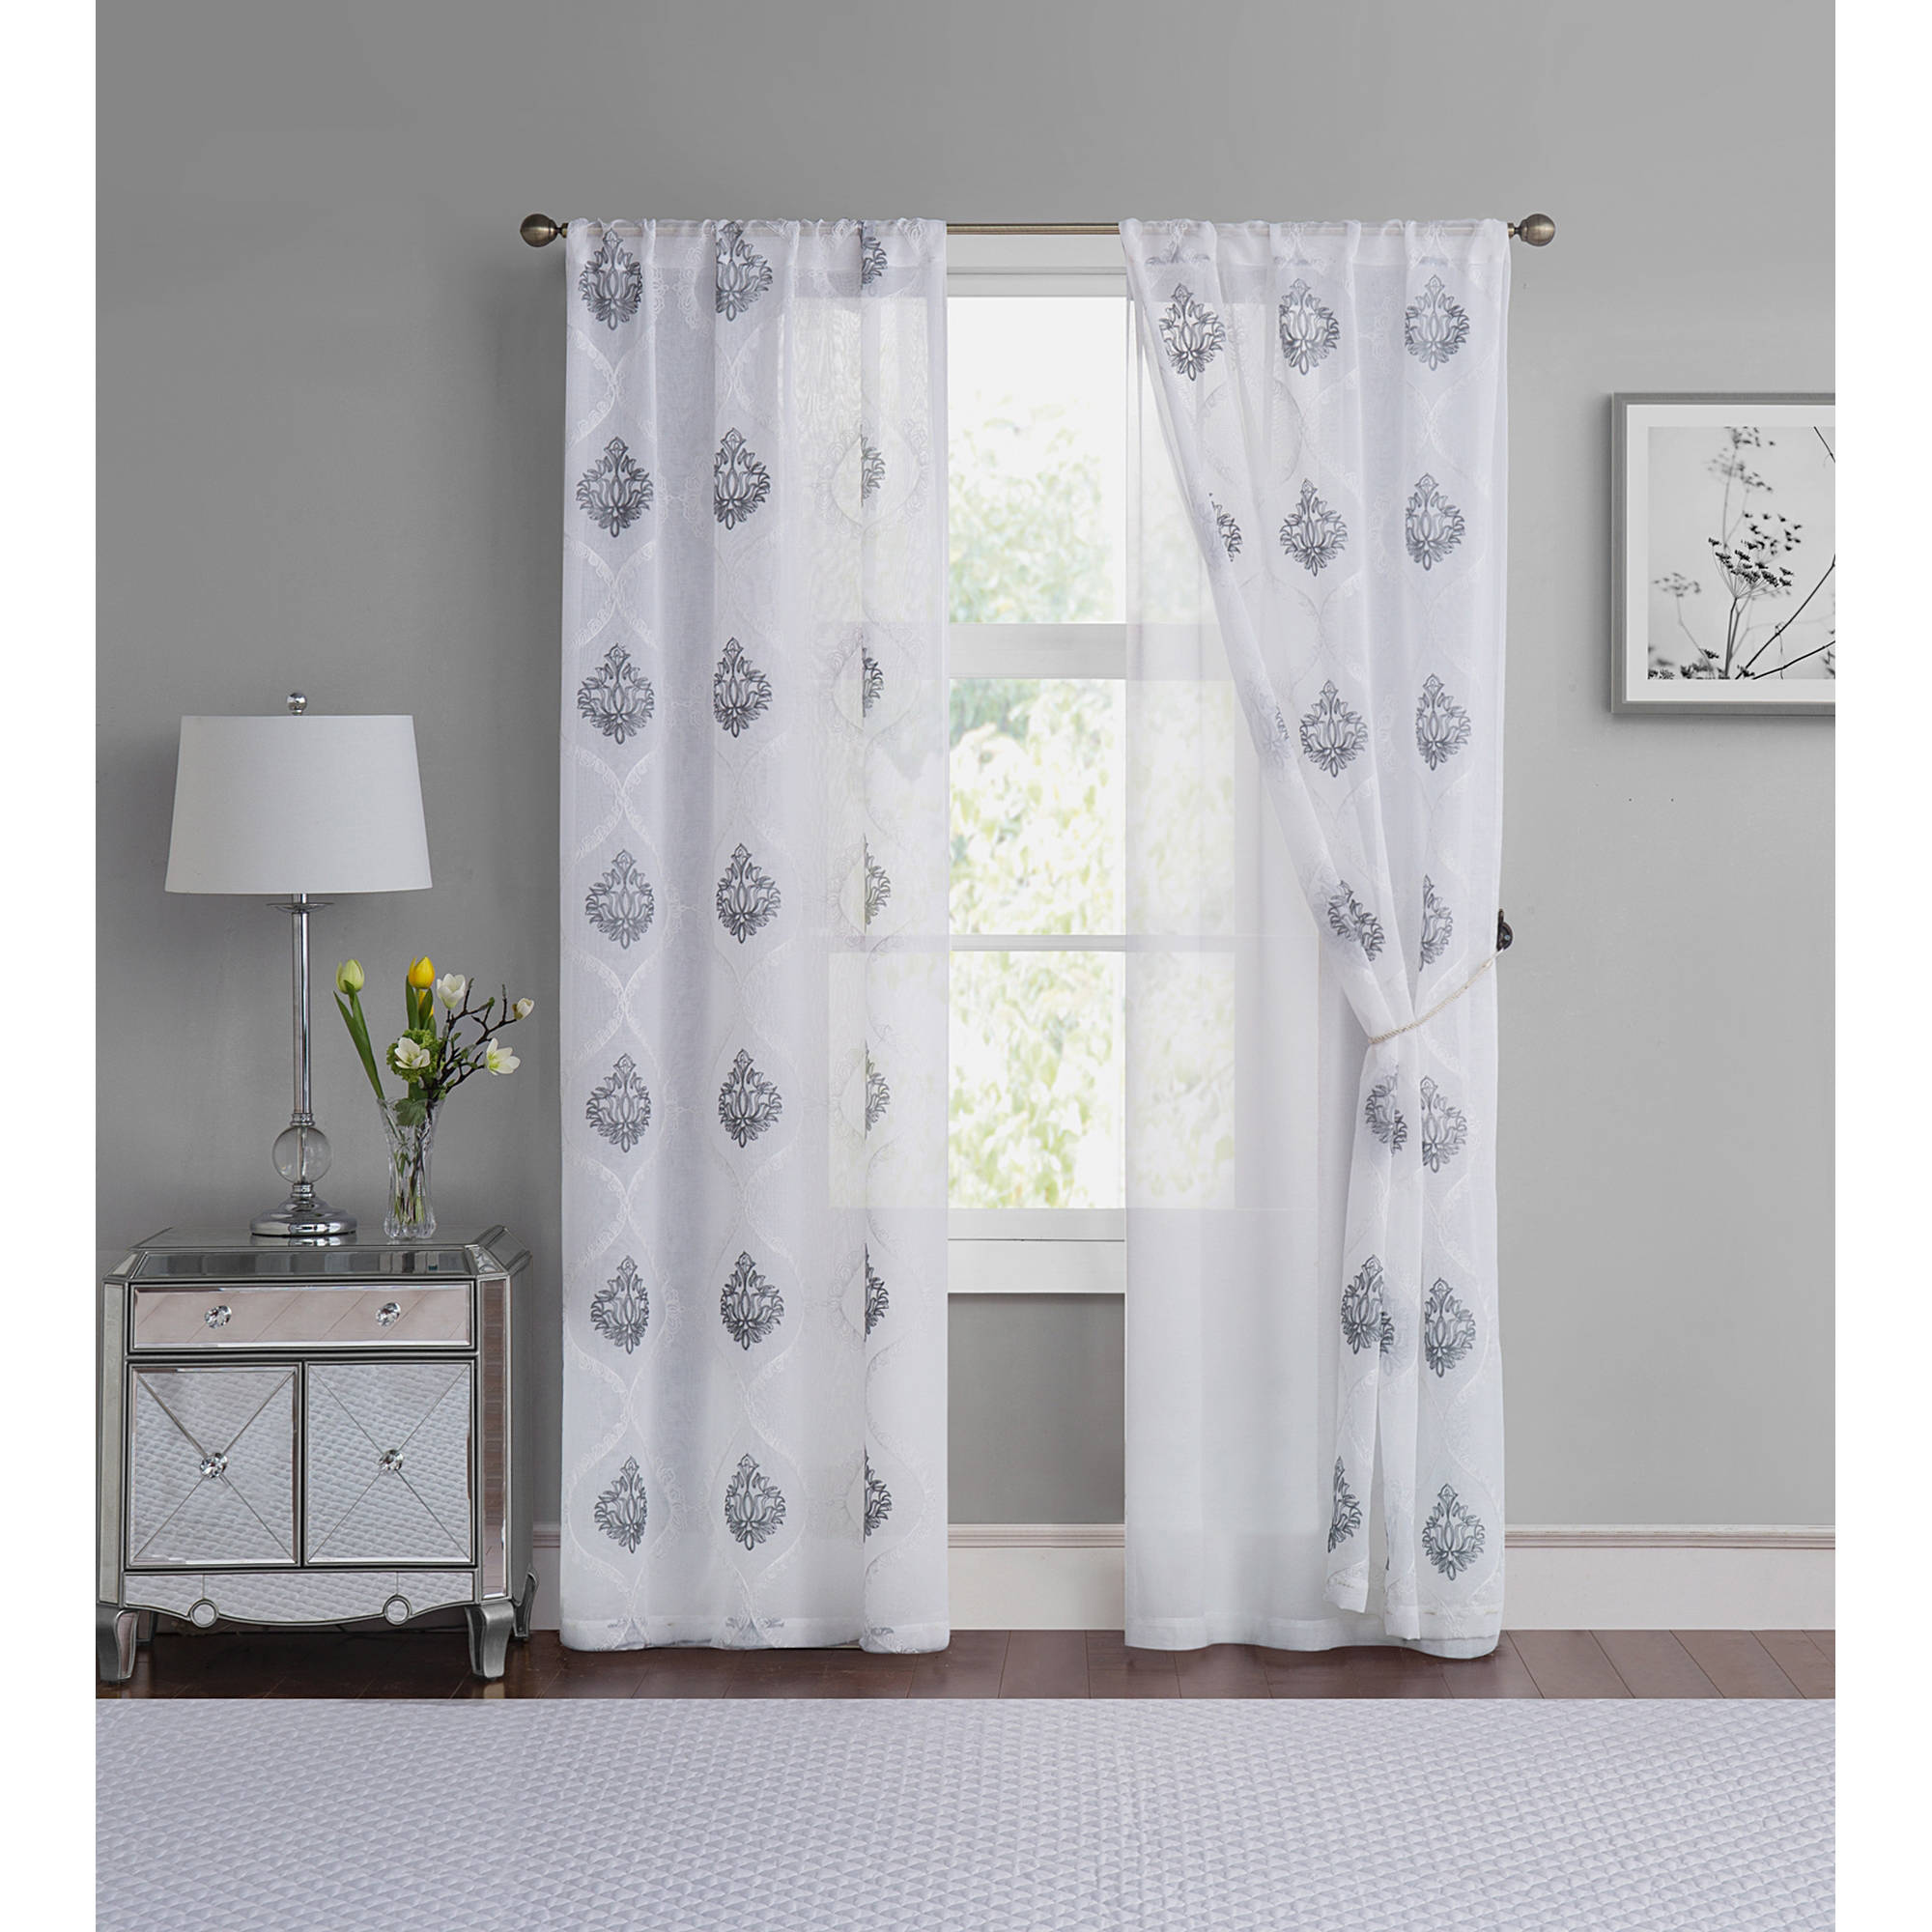 VCNY Home Jade Embroidered Damask 4-Pack Rod Pocket Window Curtain Panels, Multiple Sizes Available